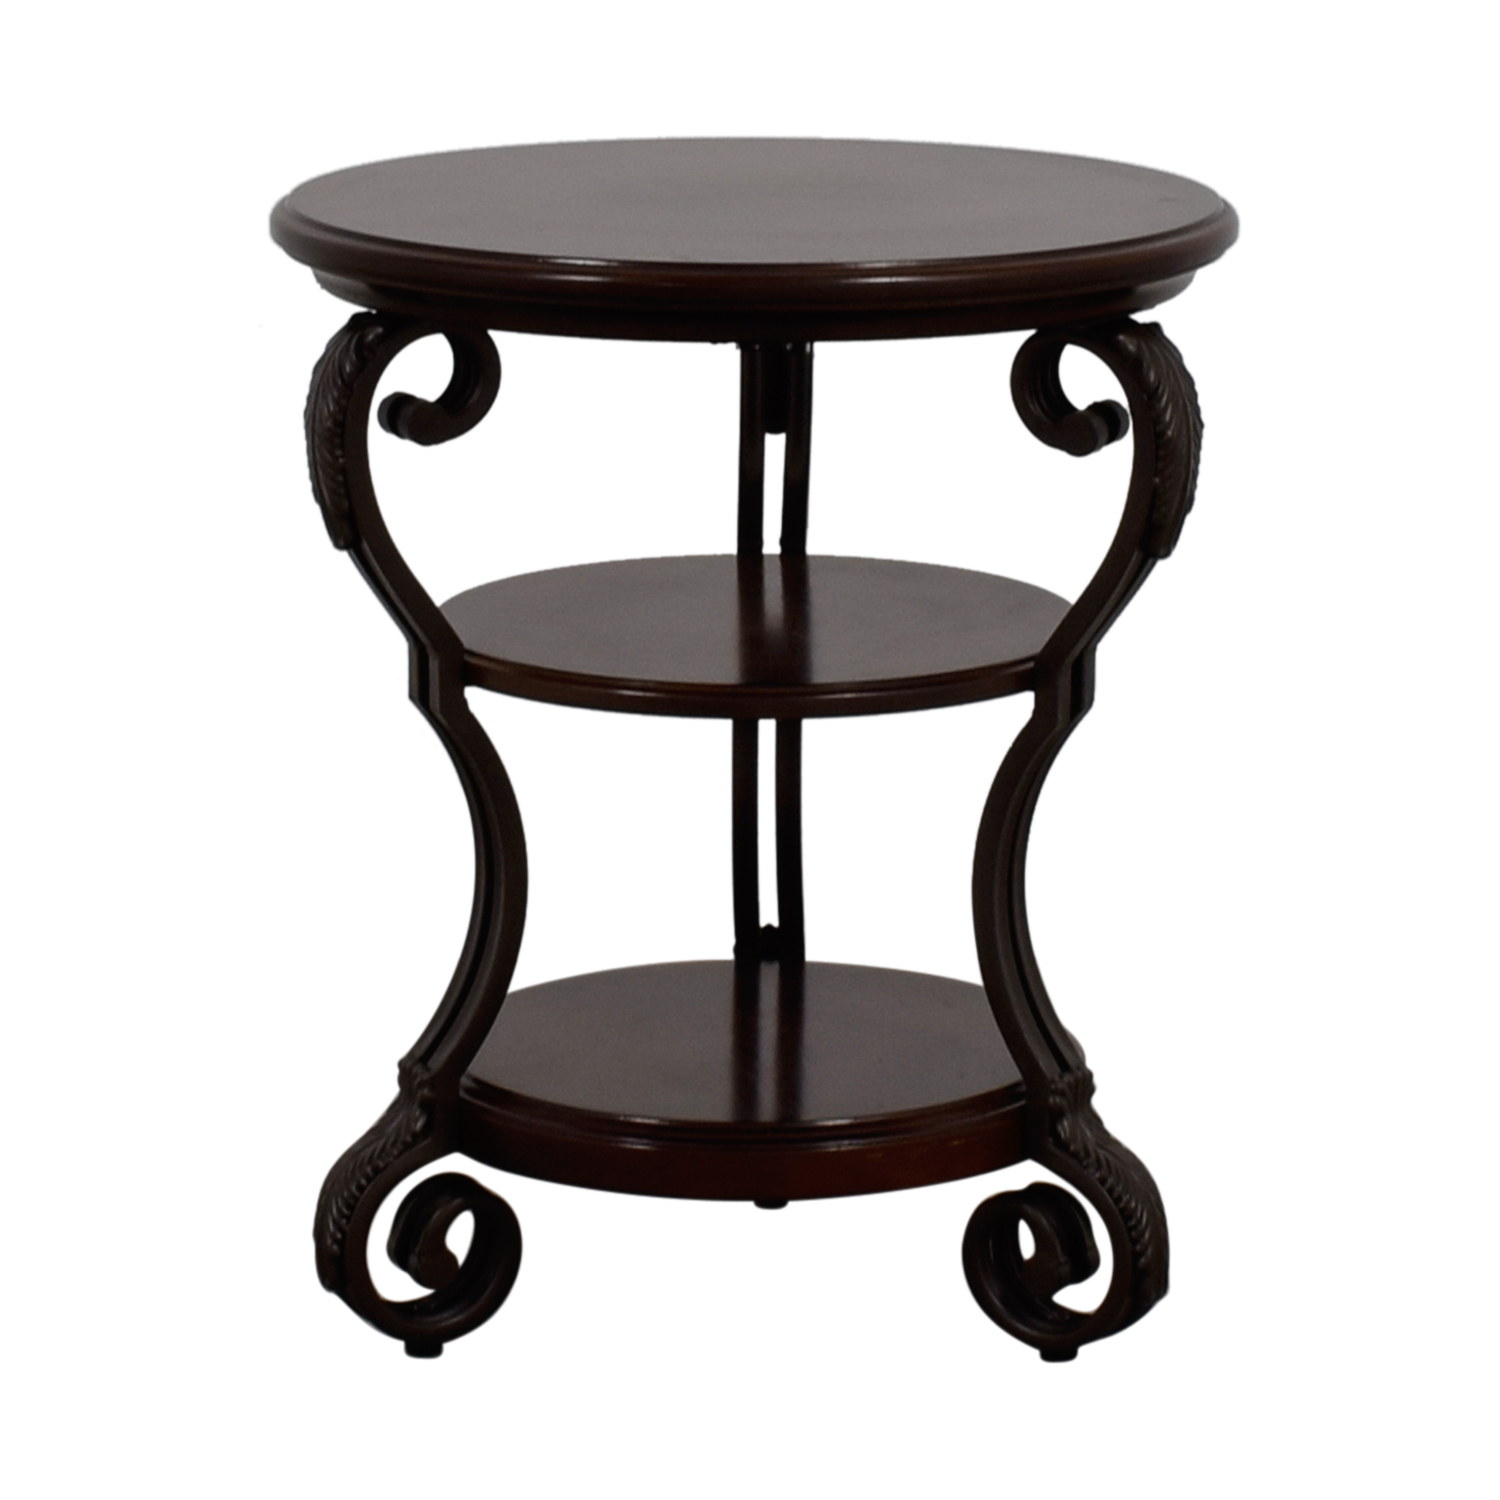 wrought iron side table with glass top probably perfect best off ashley furniture round wood end tables mahogany white cube bedside two drawer nightstand barbie doll coleman queen